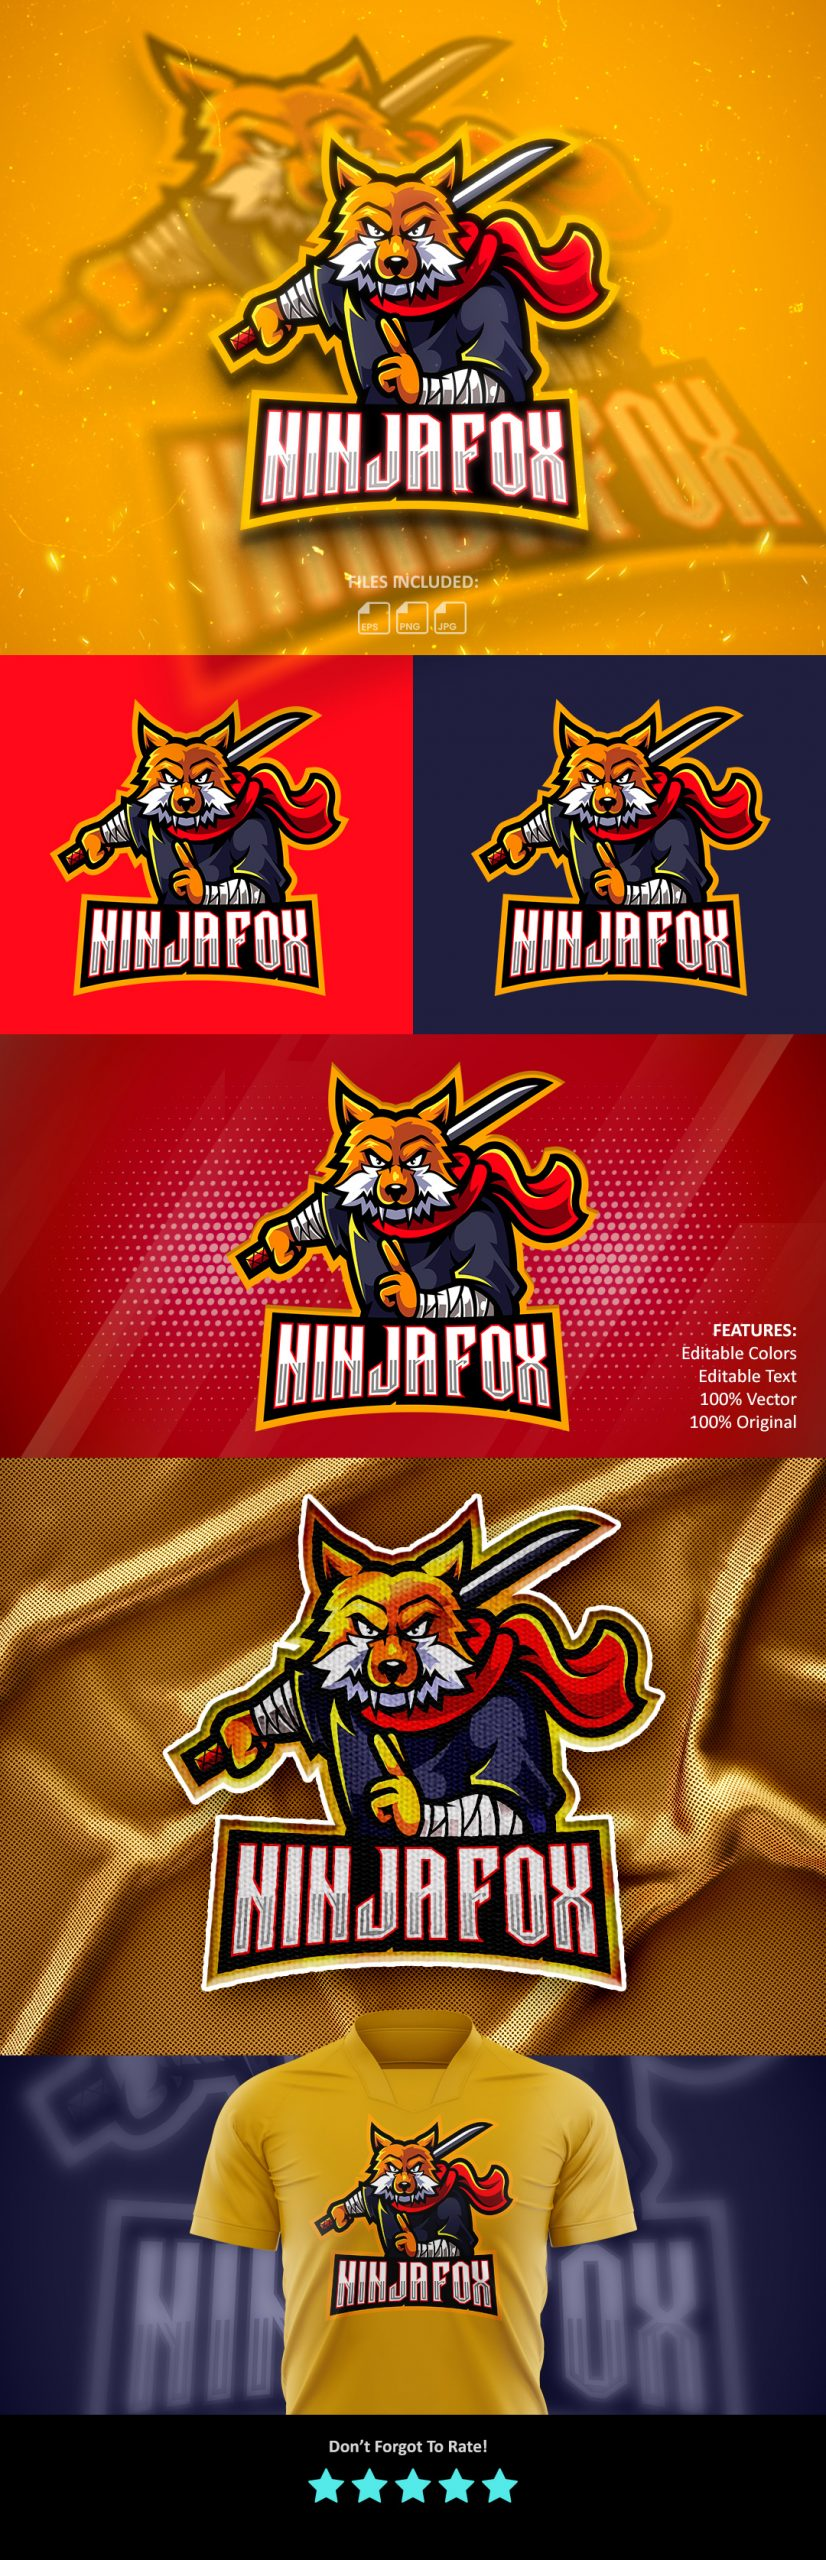 Free-Download-Ninja-Fox-Mascot-Logo